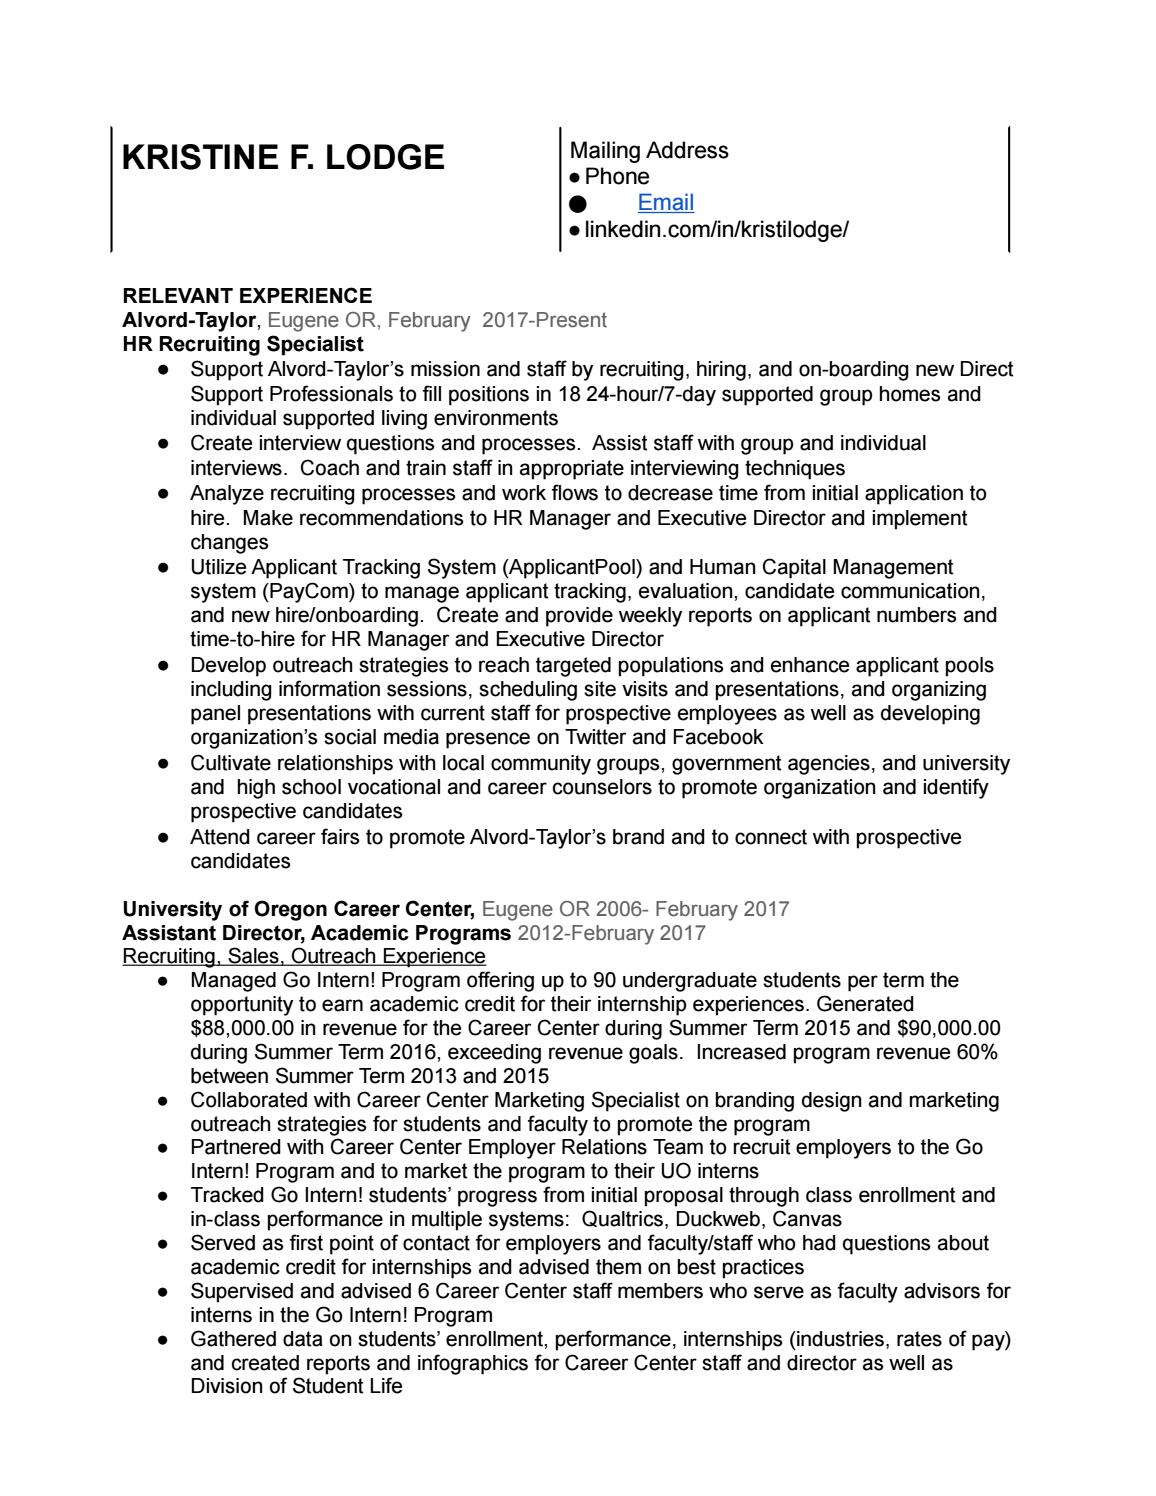 Higher Education Cover Letter Examples from image.isu.pub